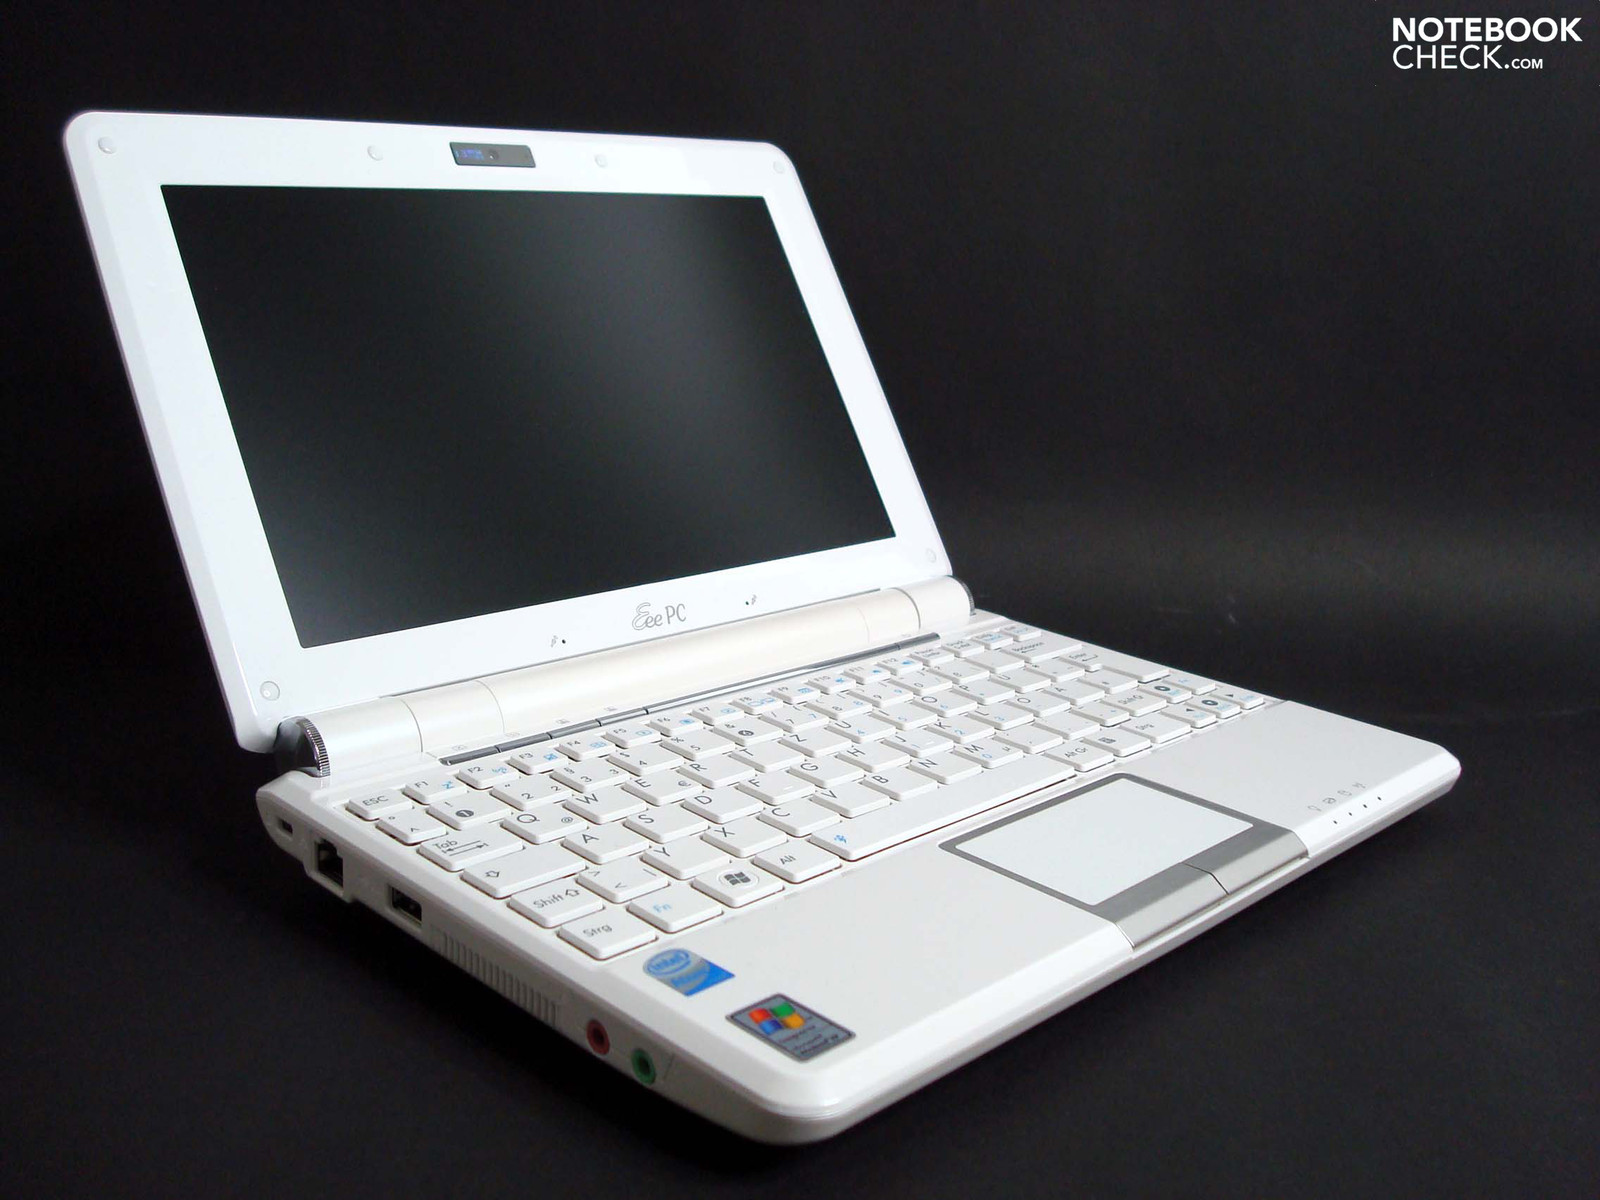 Asus Eee PC 1000/XP Netbook AzureWave WLAN Drivers Mac